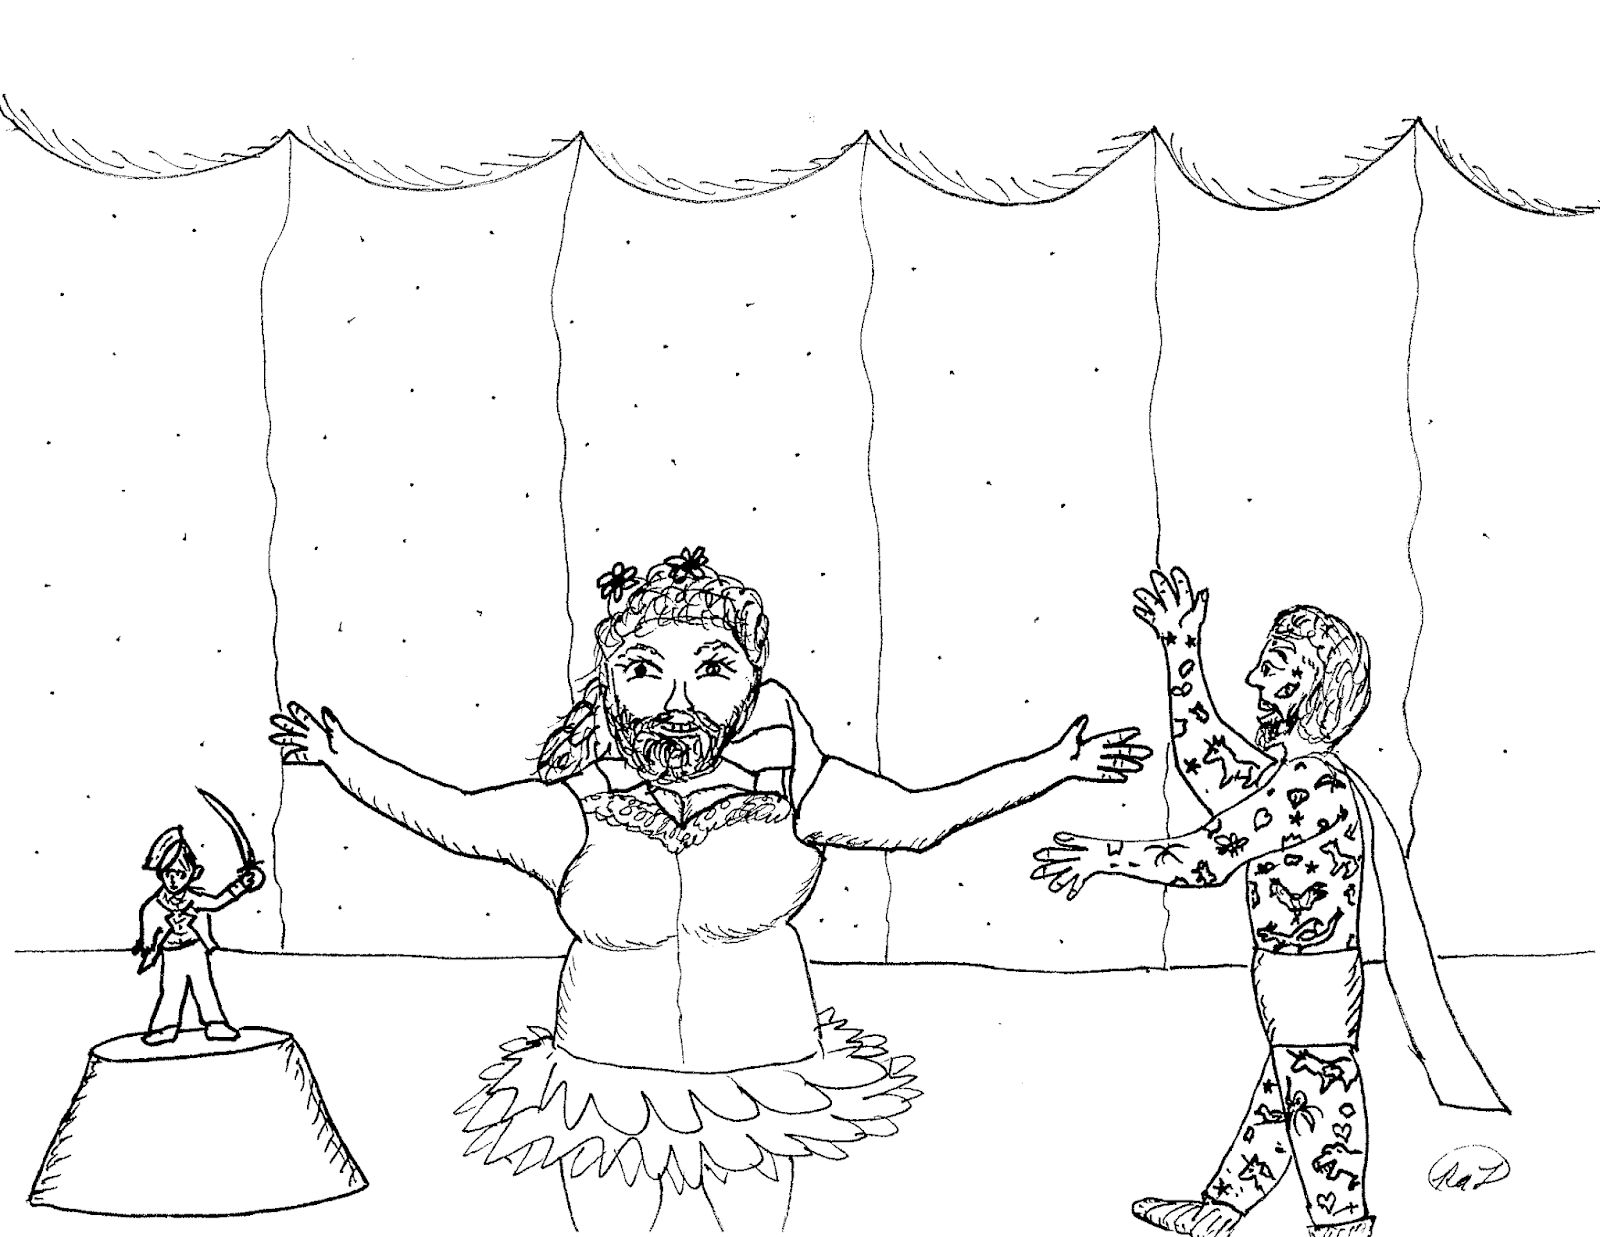 Robin's Great Coloring Pages: The Greatest Showman circus